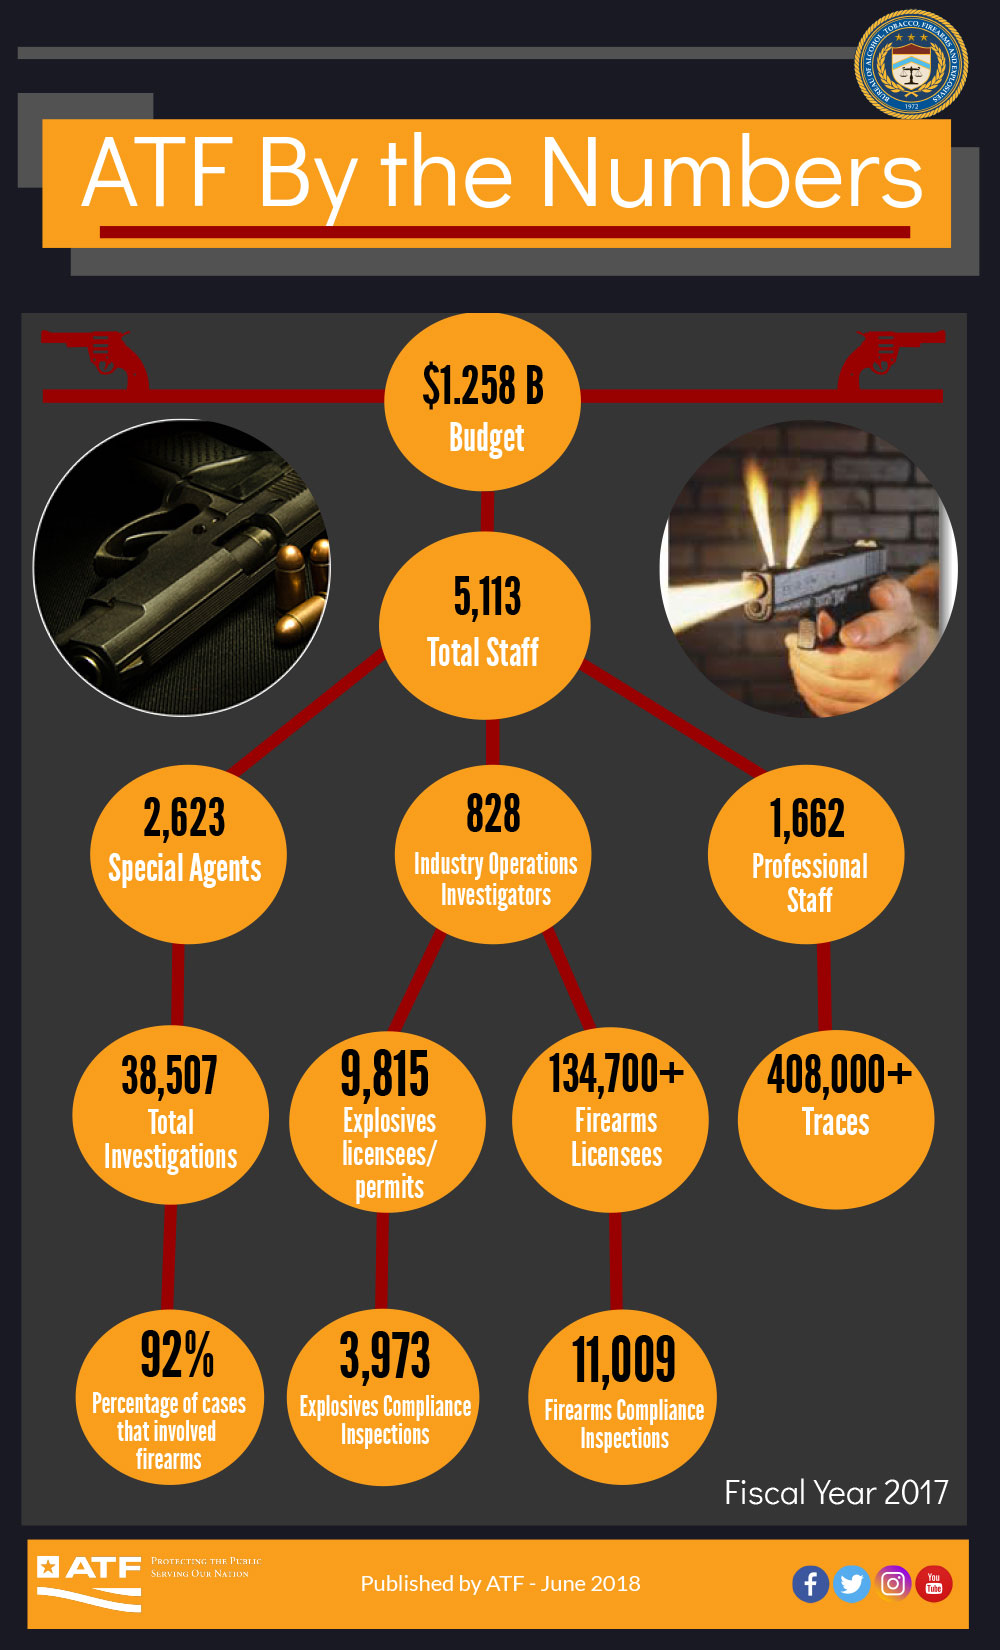 ATF By the Numbers Infographic